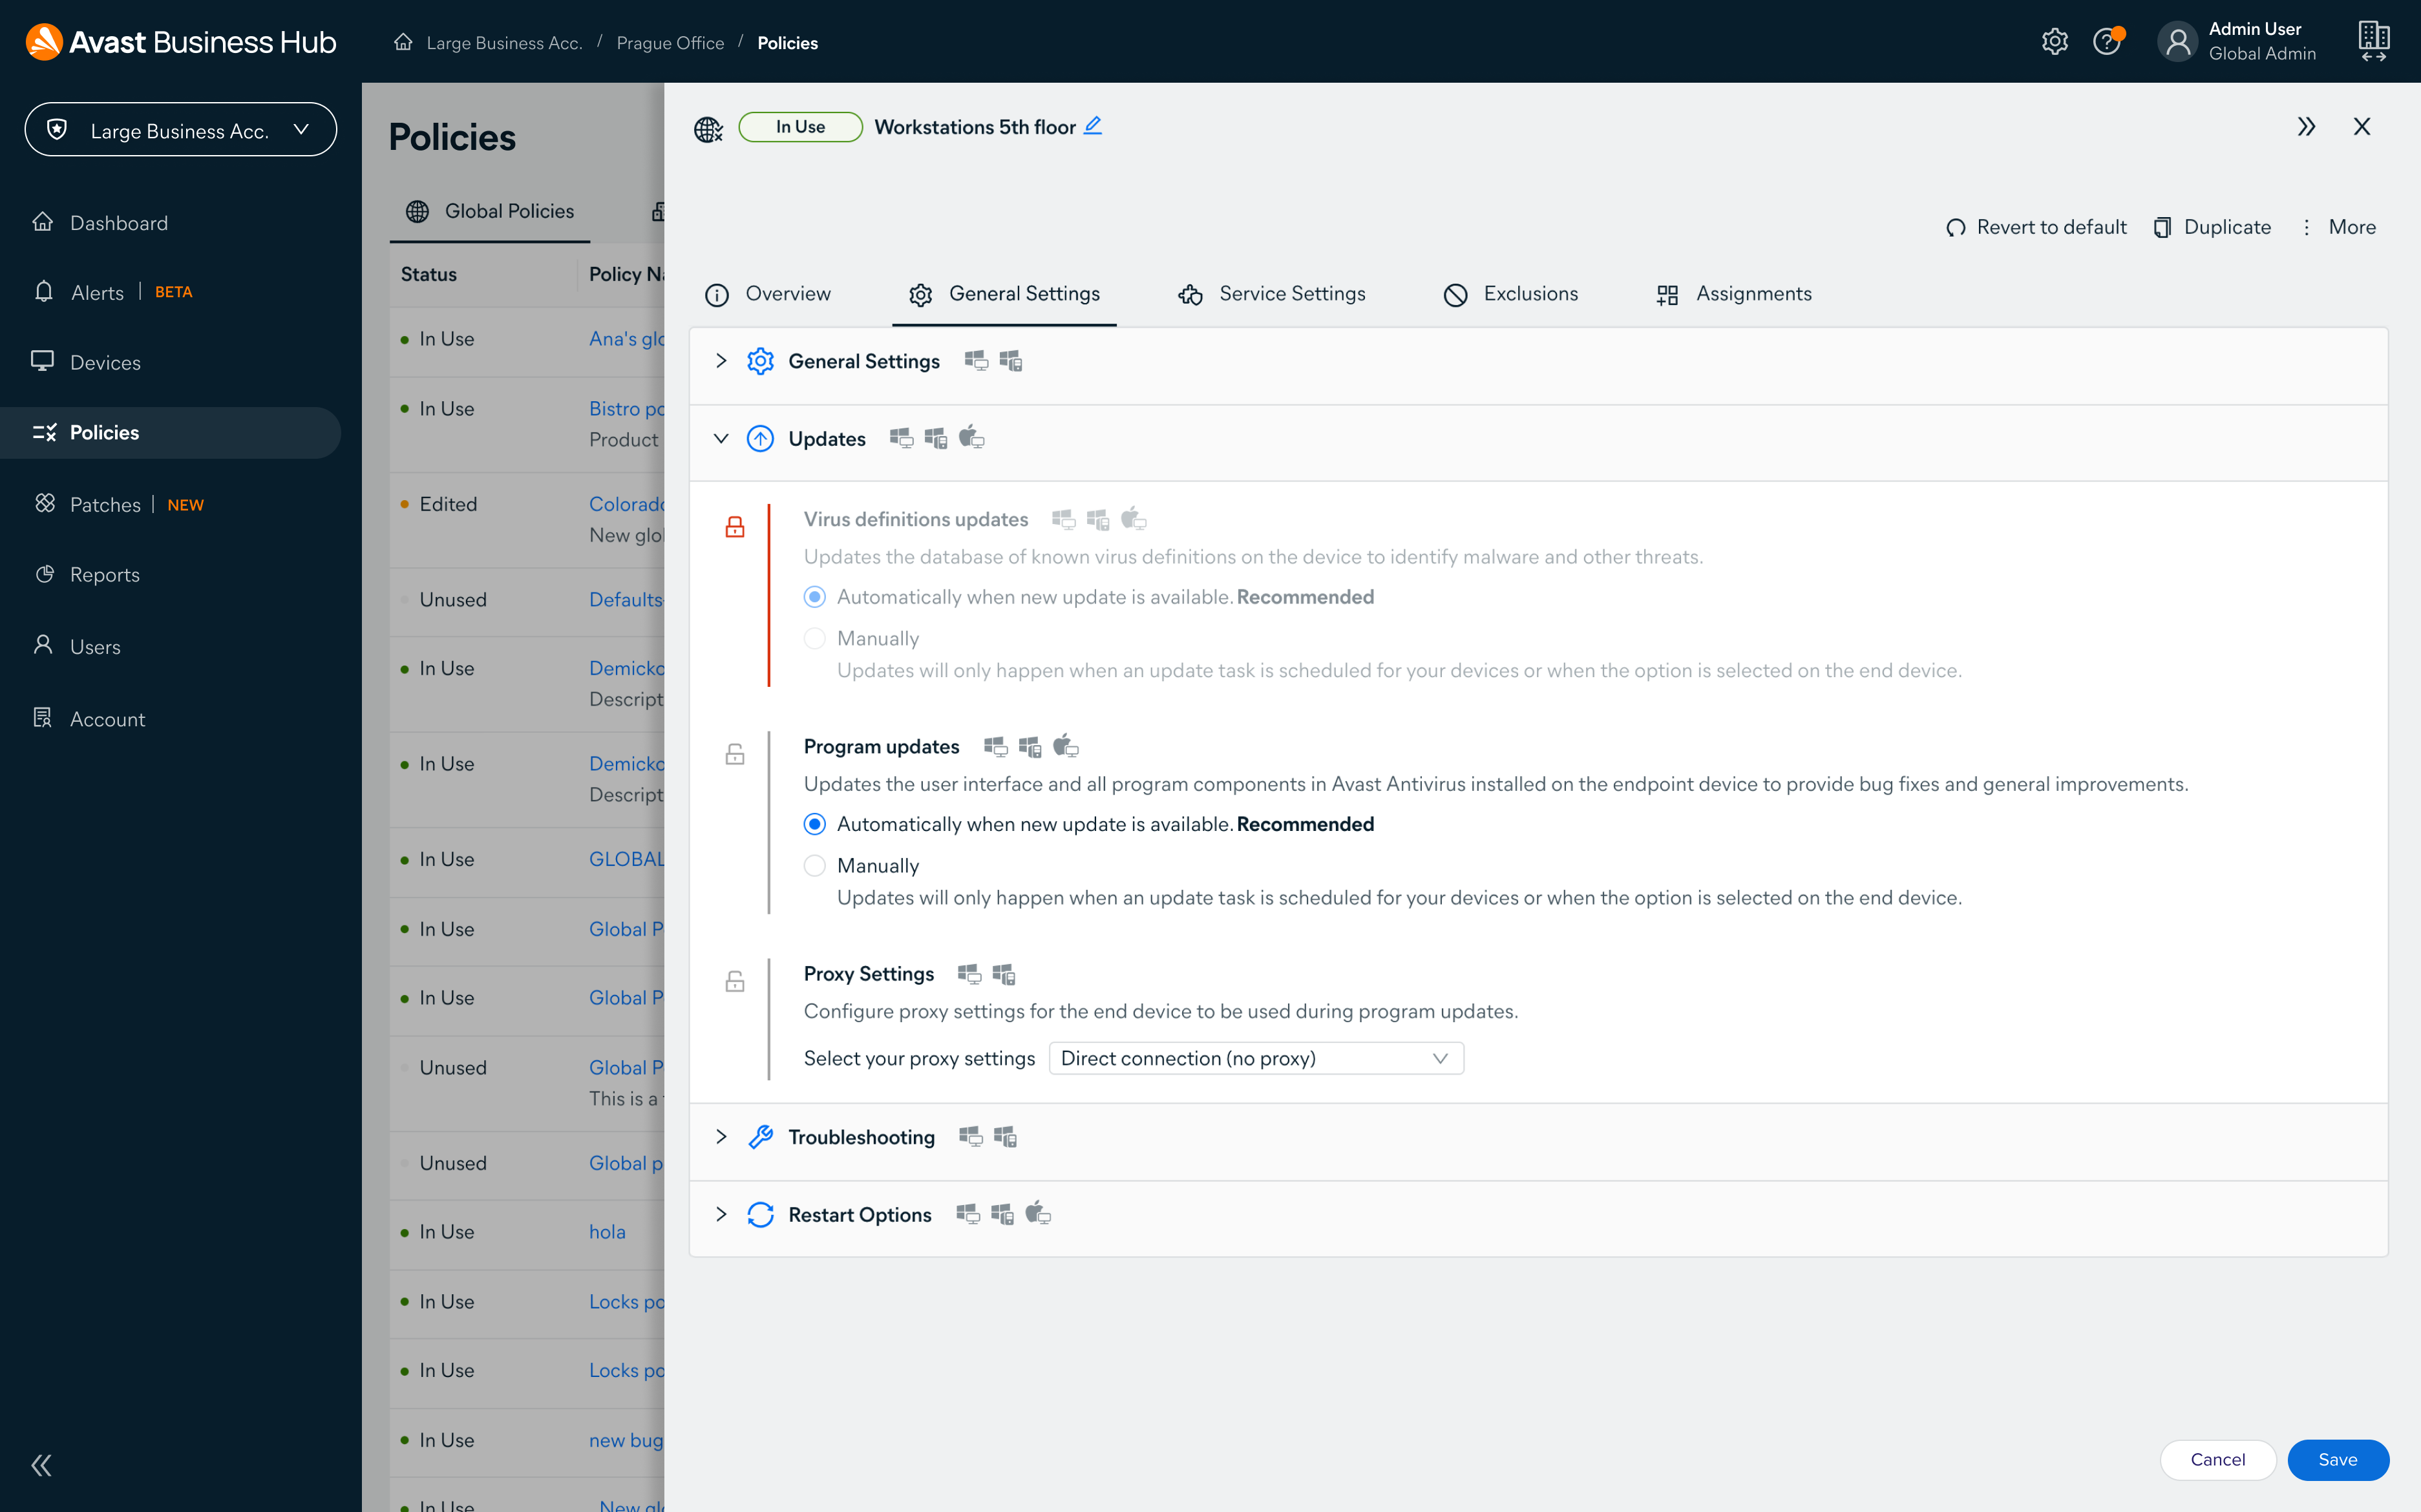 Avast Business Pro Plus Software - Apply commands across devices like scans, restarts, and more. Run commands automatically based on policy settings